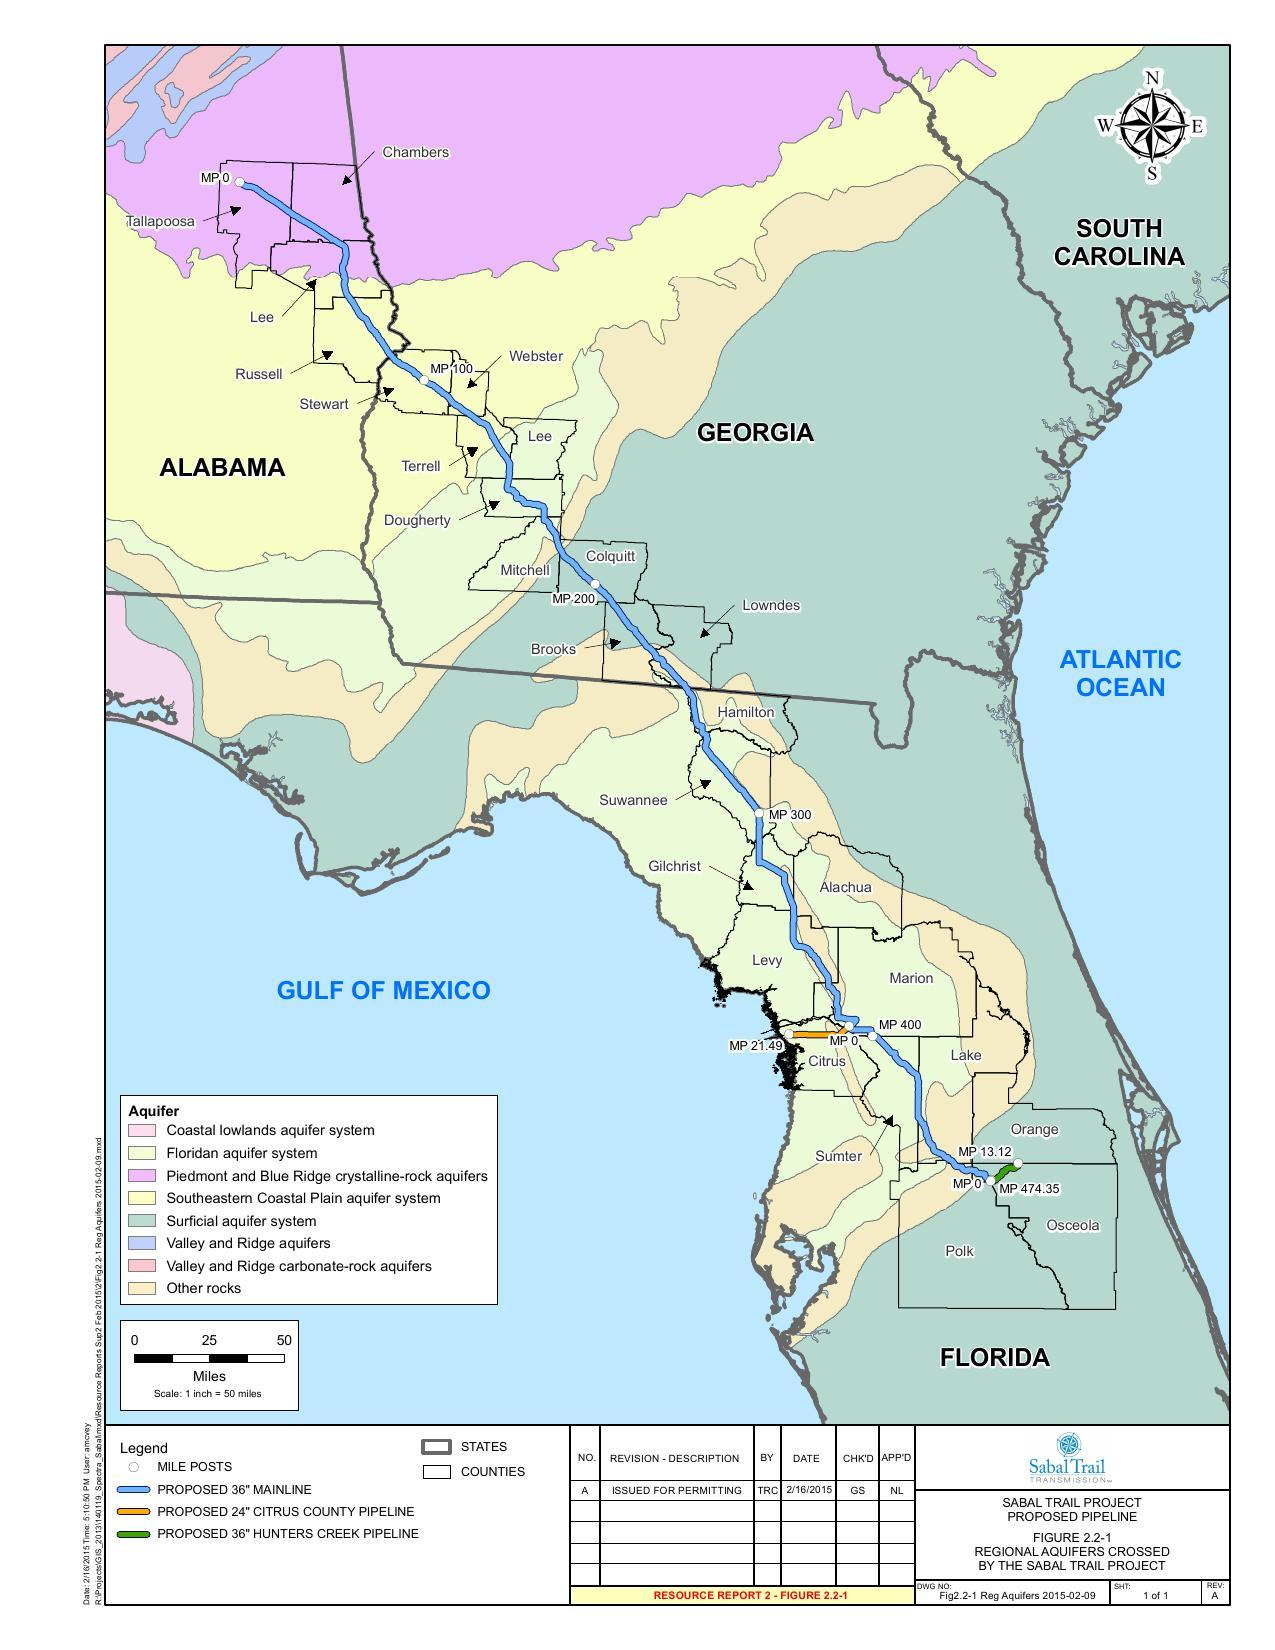 1275x1650 Figure 2.2-1, in Regional Aquifers Crossed by the Sabal Trail Project, by John S. Quarterman, for SpectraBusters.org, 20 February 2015